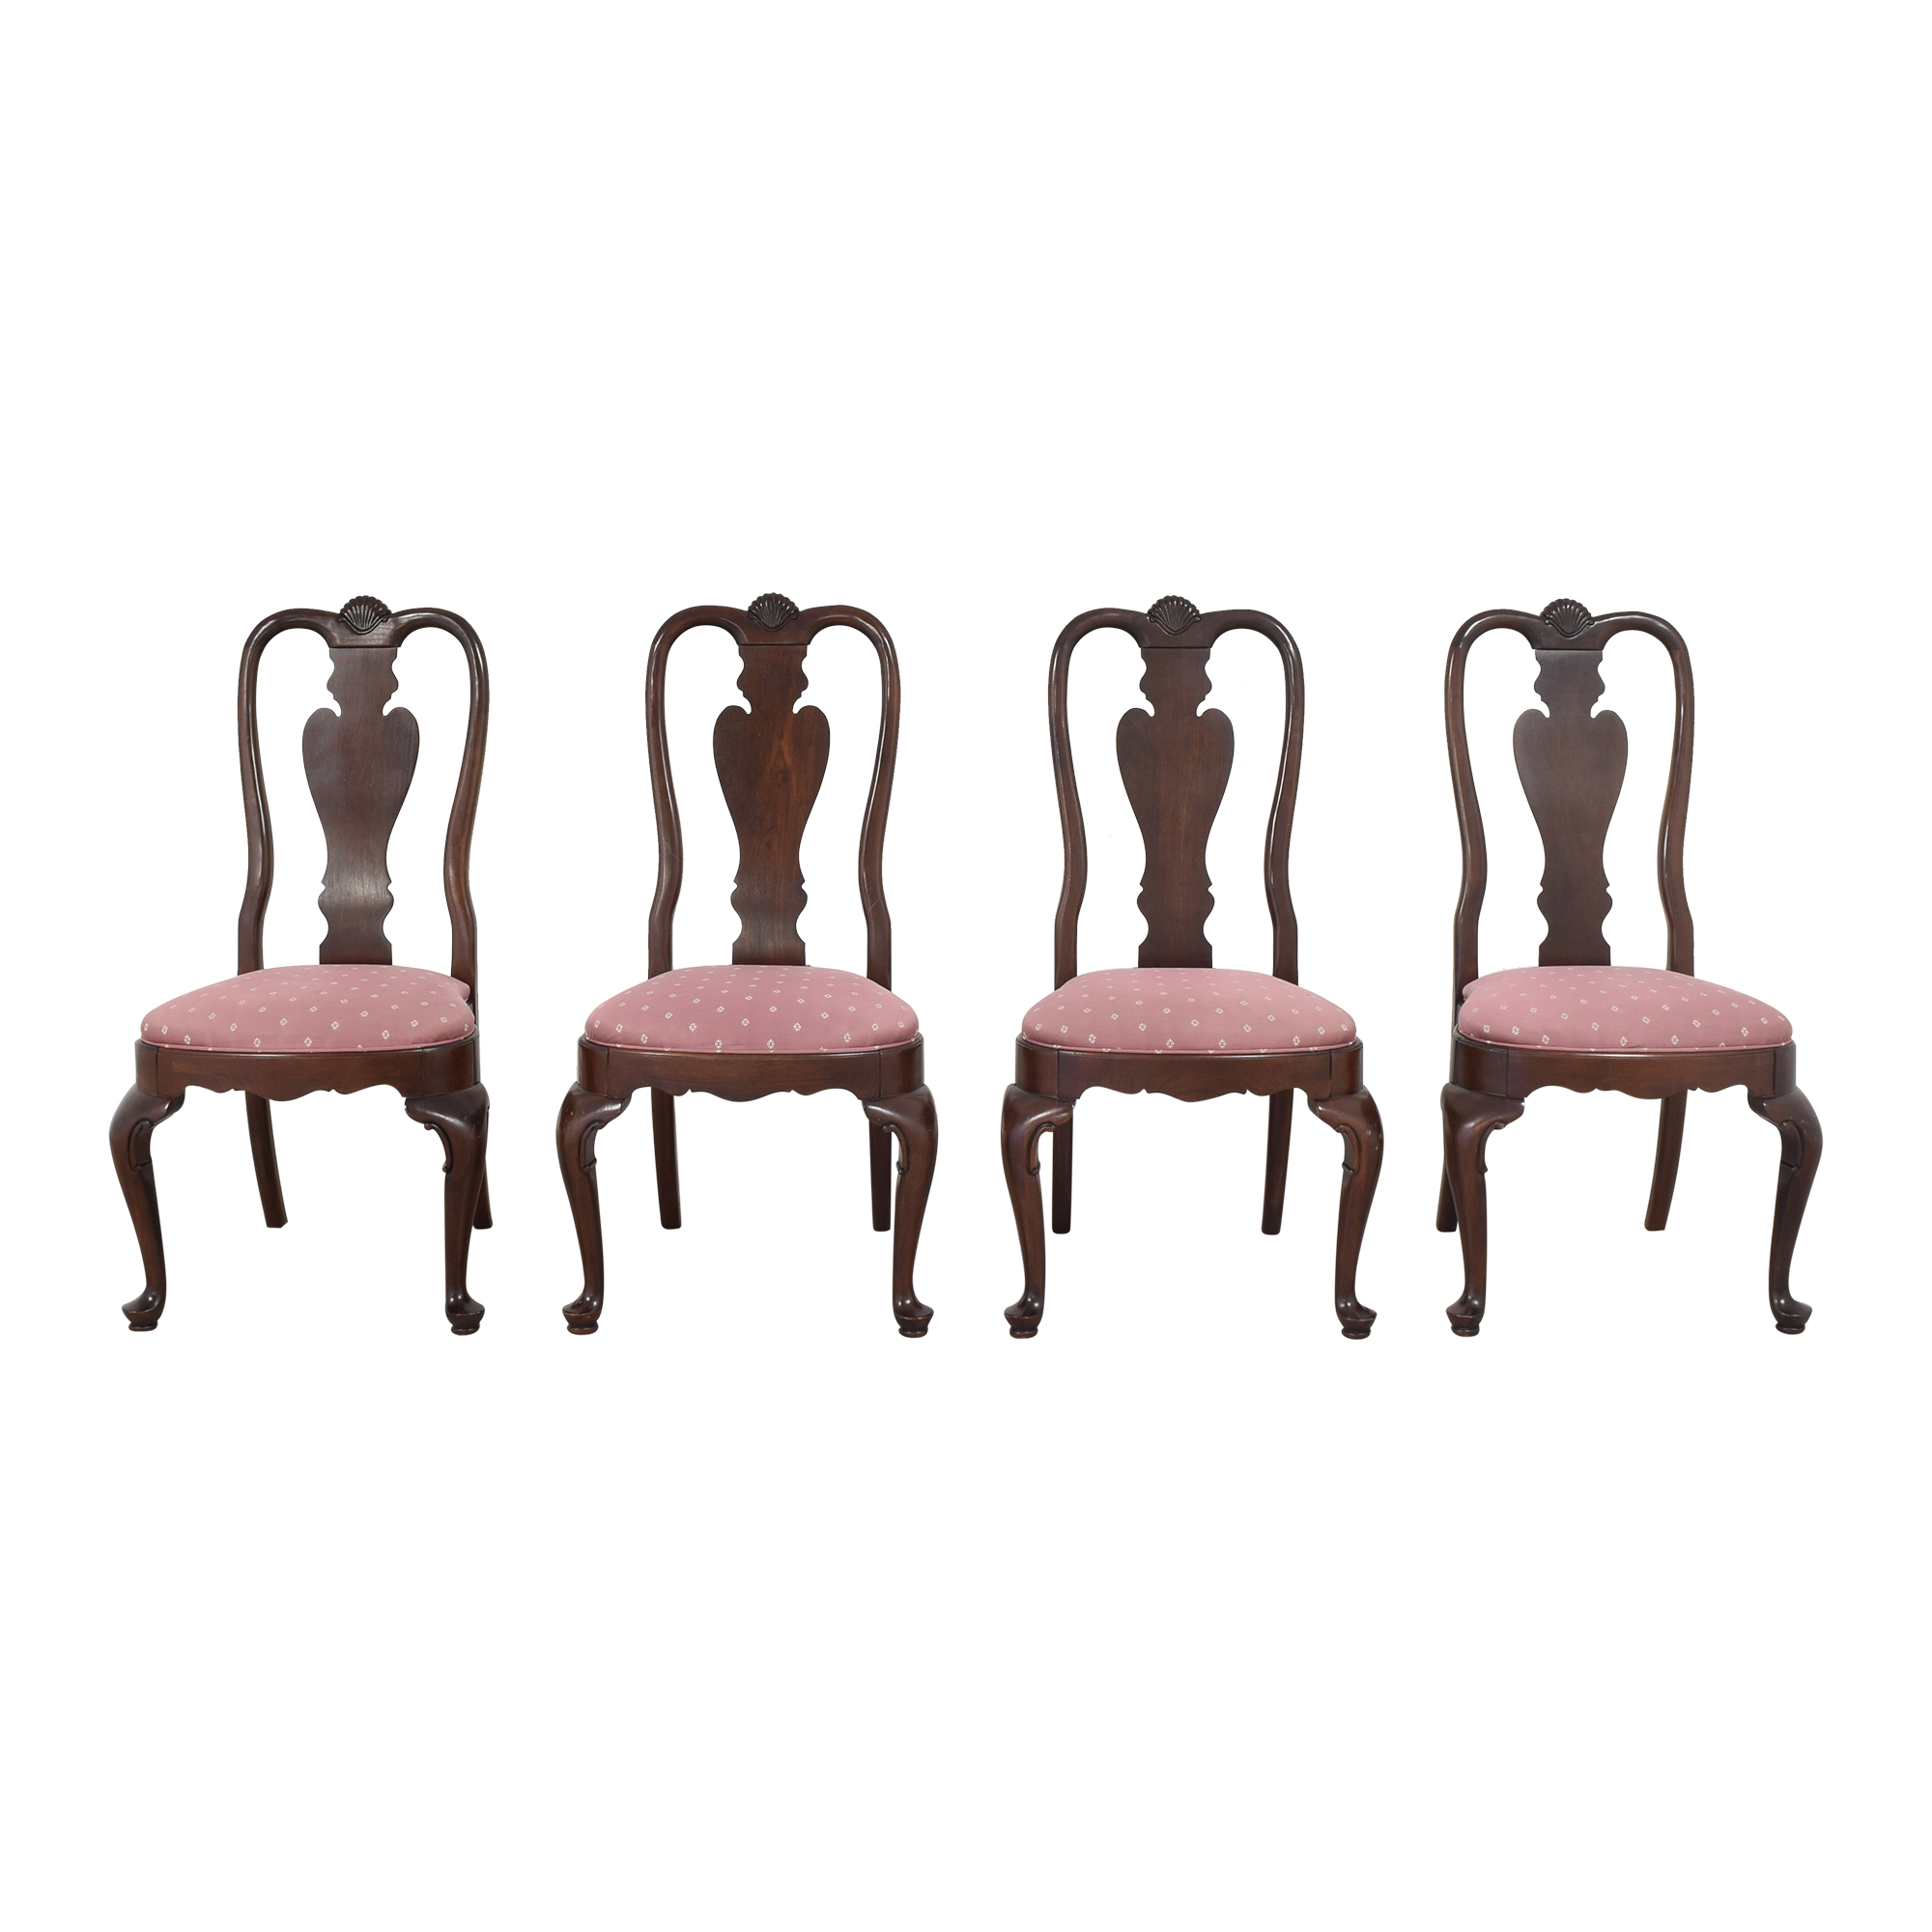 Ethan Allen Ethan Allen Queen Anne Dining Side Chairs for sale